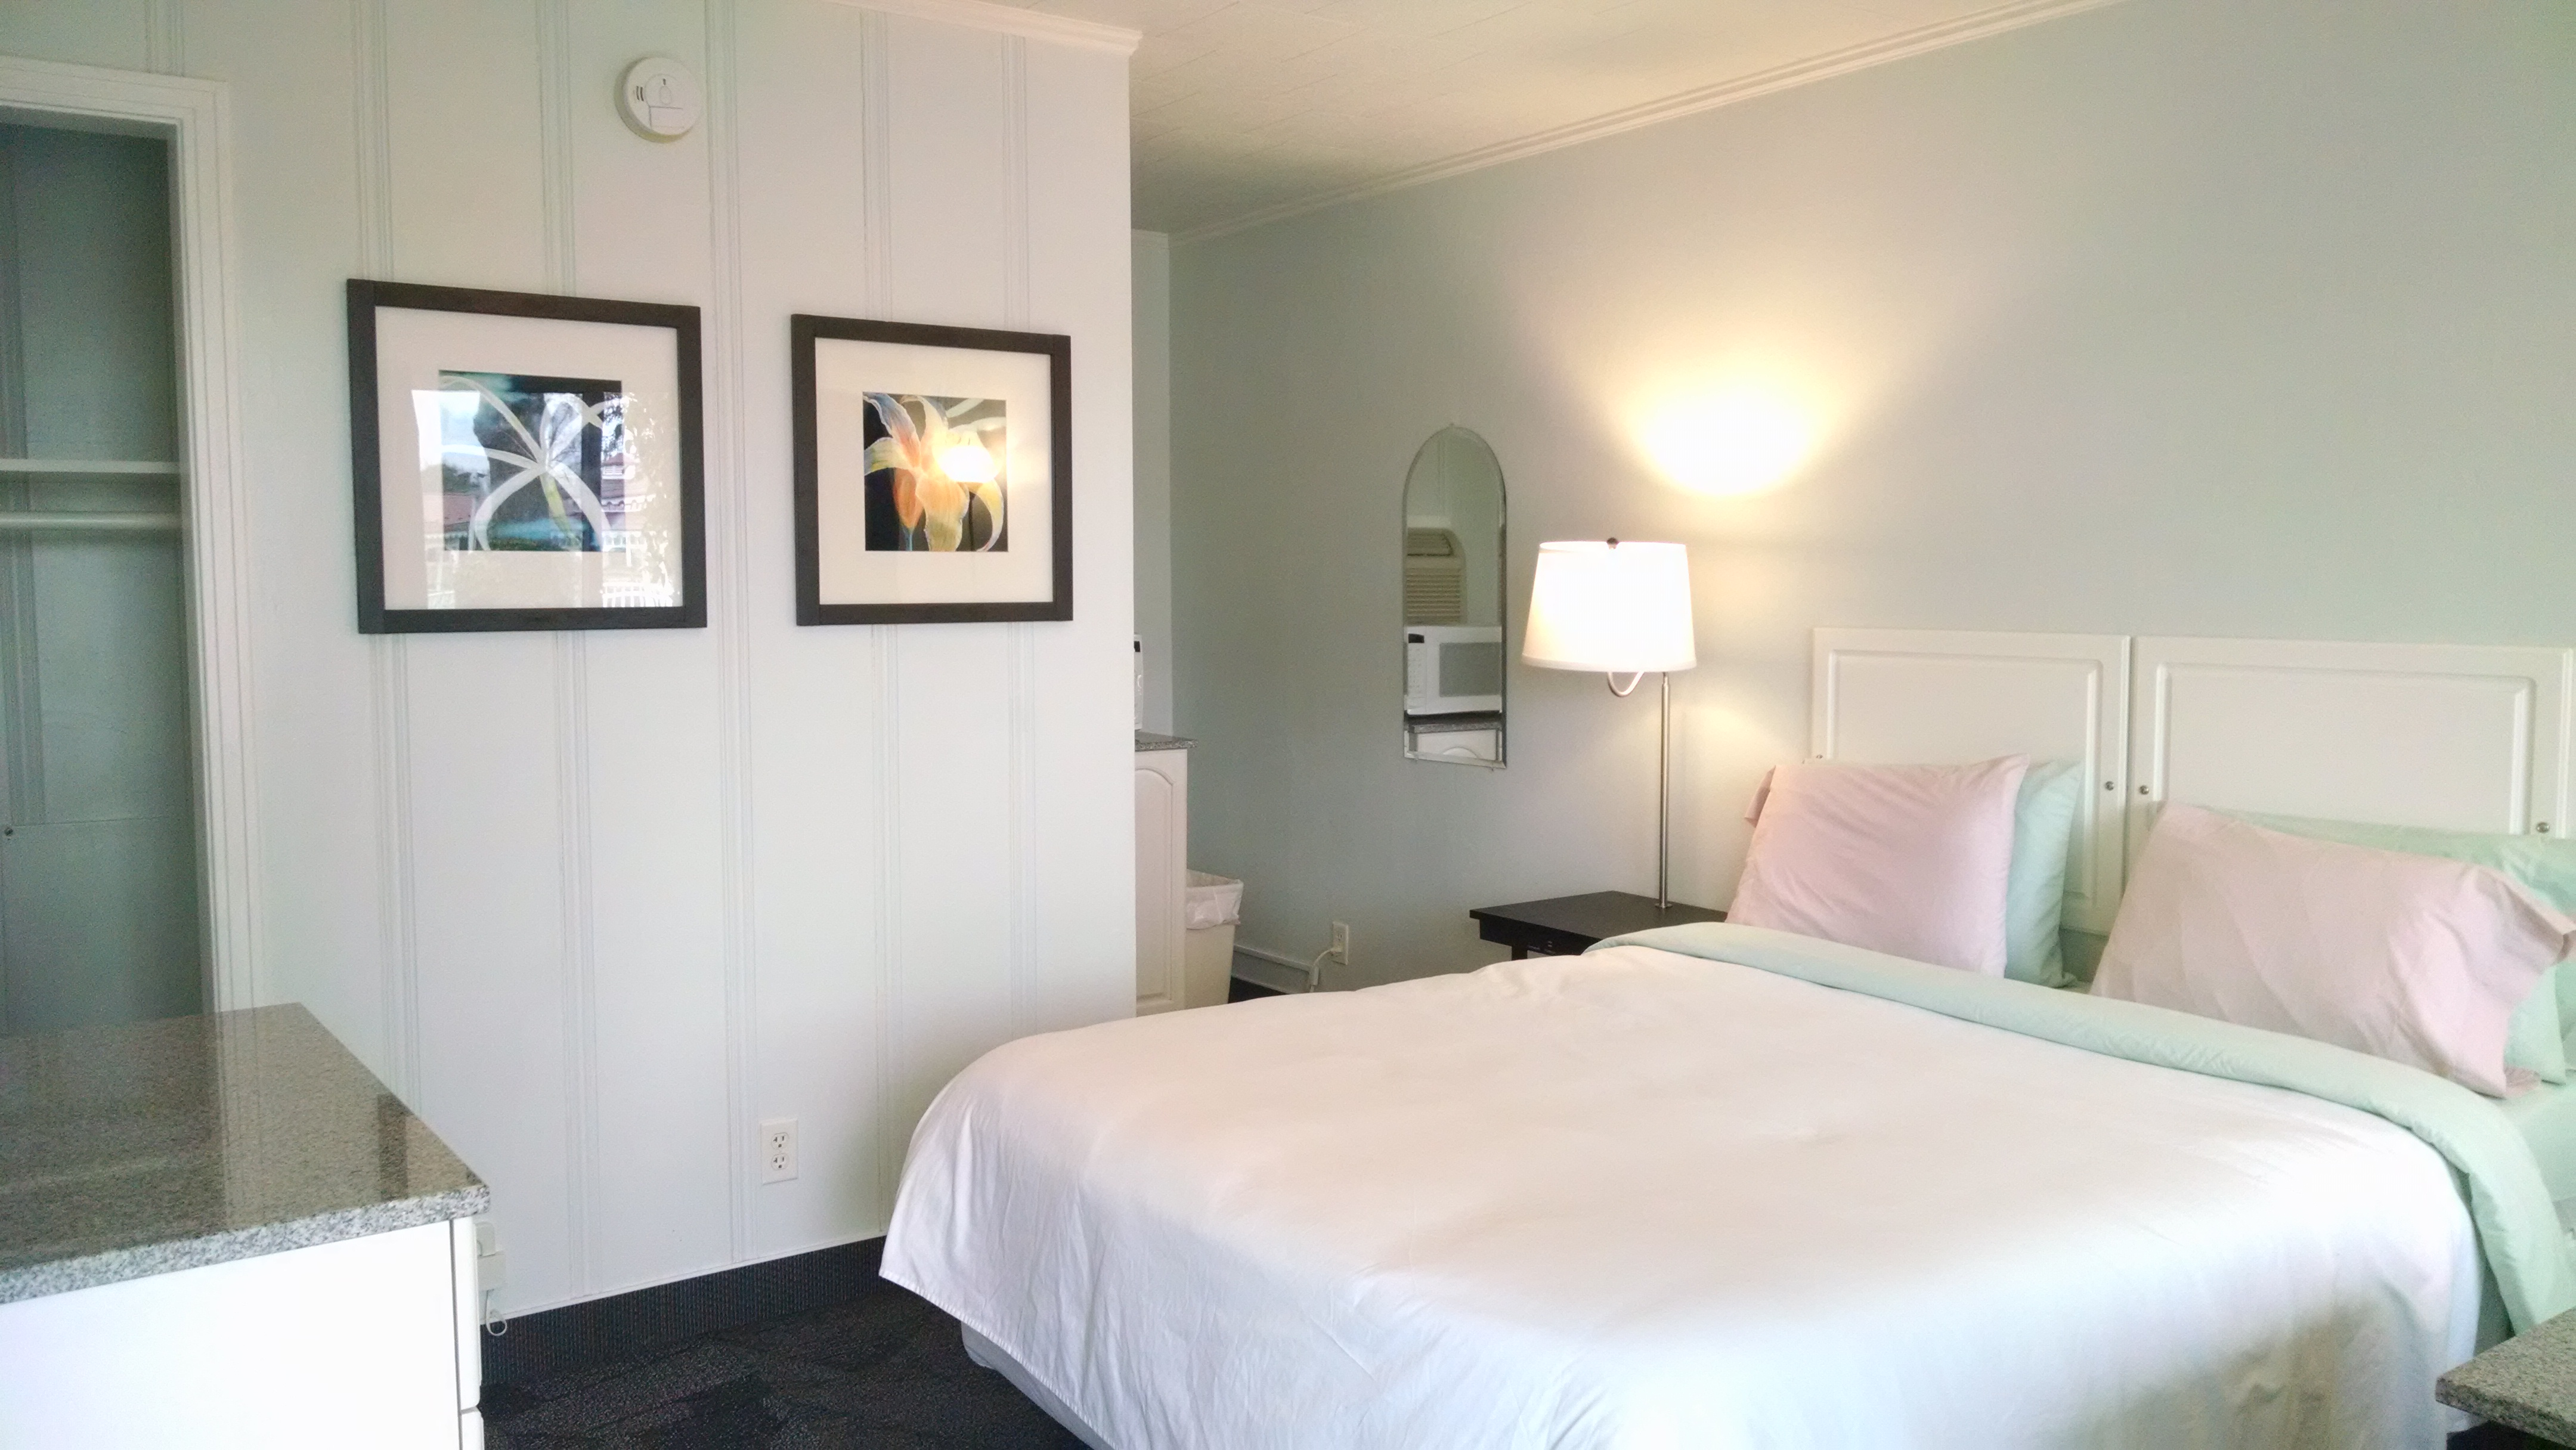 Cozy Queen Room At Murray Inn And Art Gallery Boutique Hotels For Rent In Murray Kentucky United States